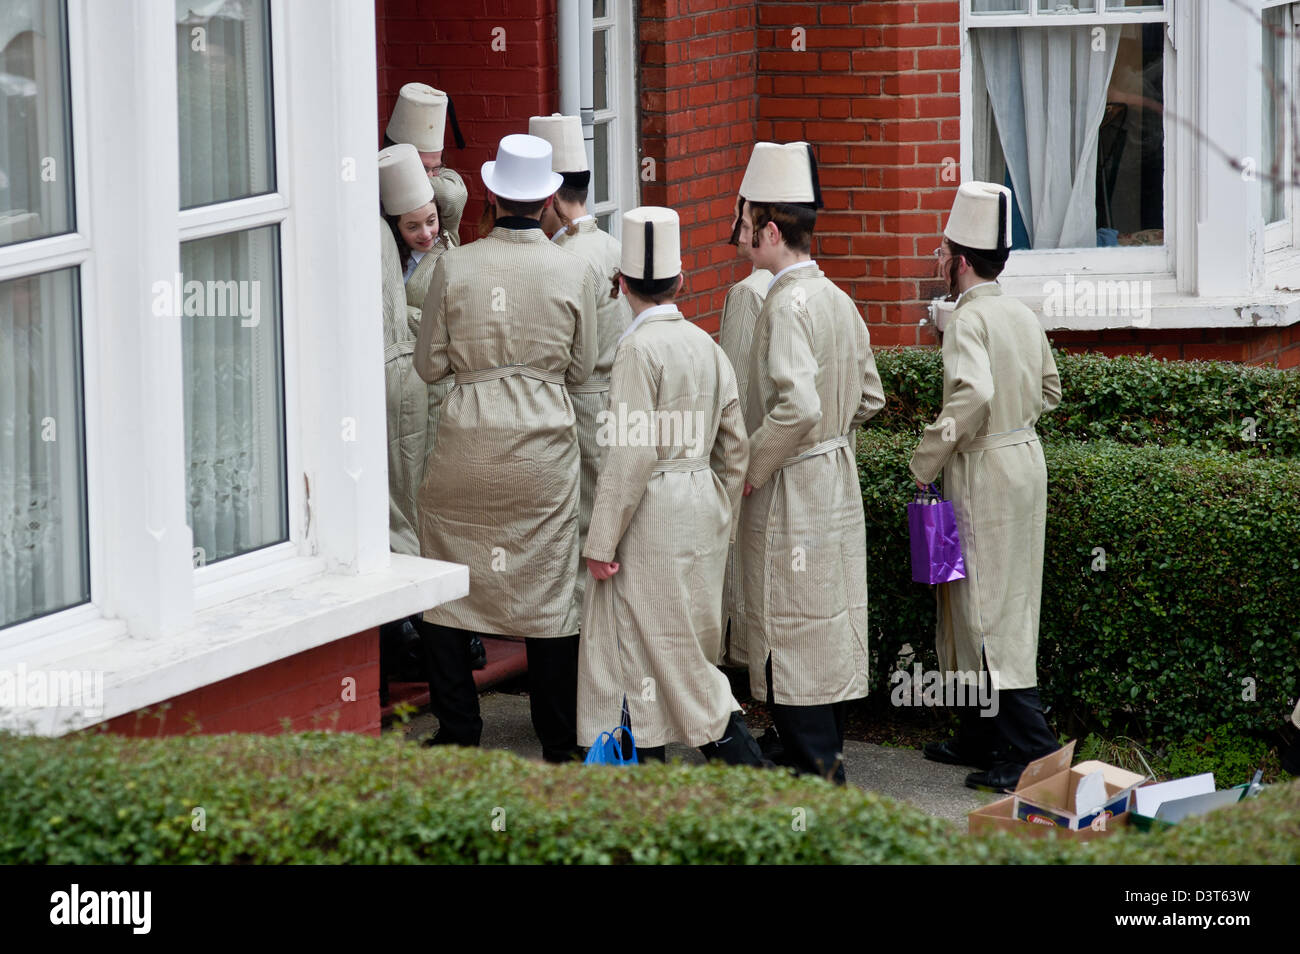 London, UK - 24 February 2013: a group of young Orthodox Jewish boys enter the house of a family in Stamford Hill - Stock Image